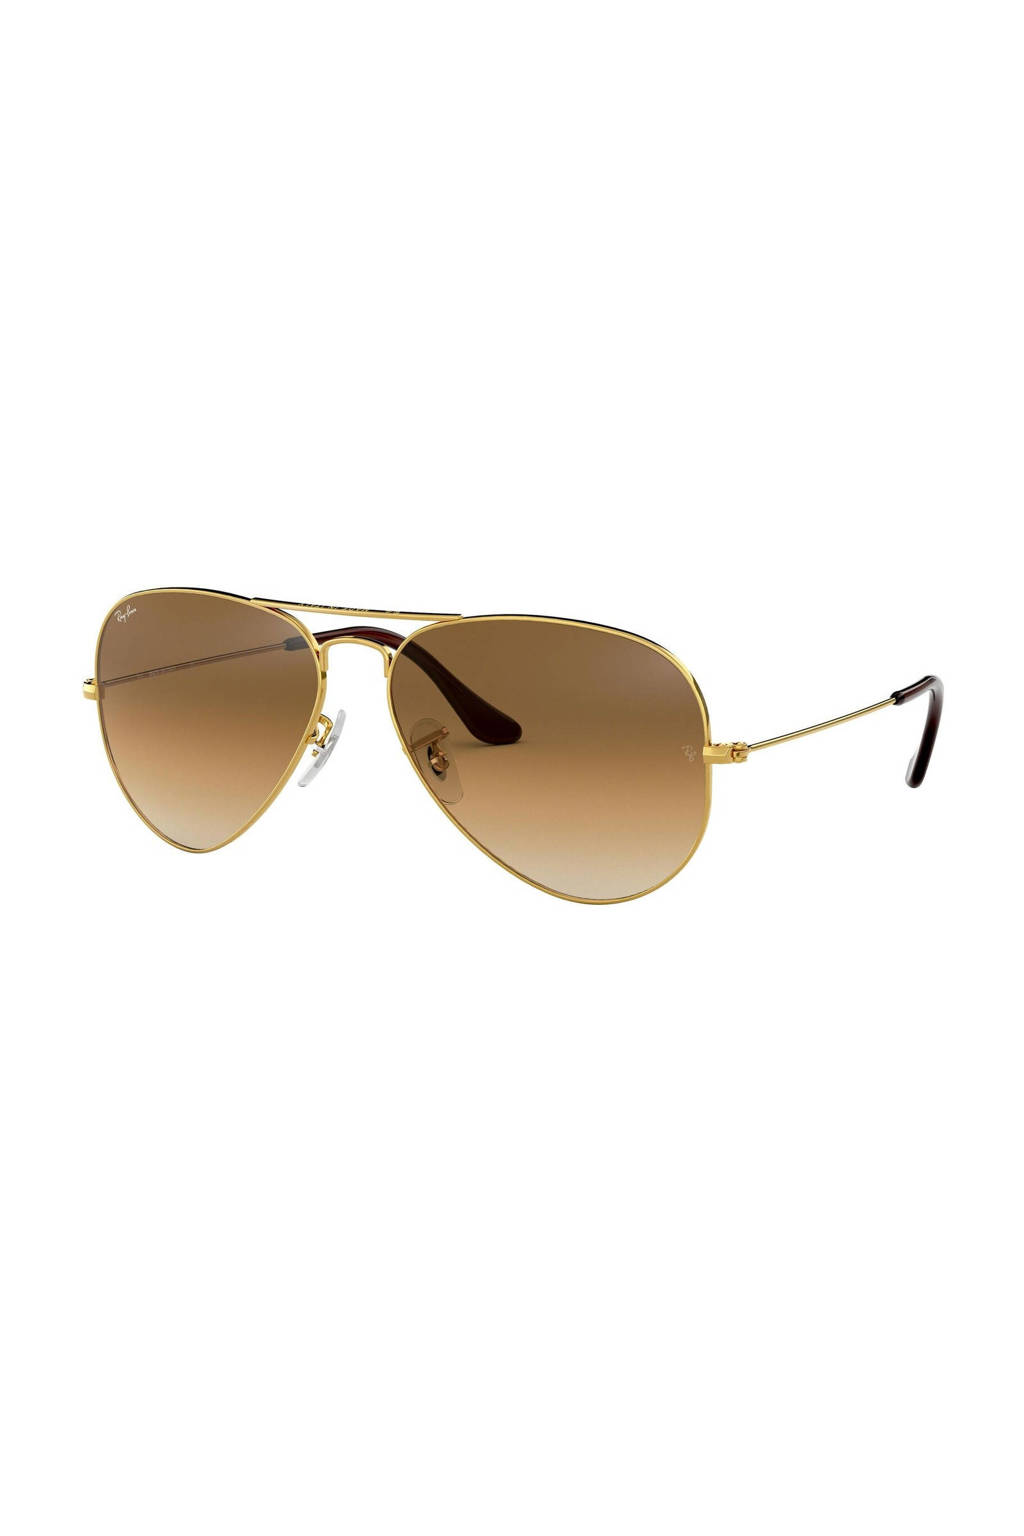 Ray-Ban zonnebril bruin